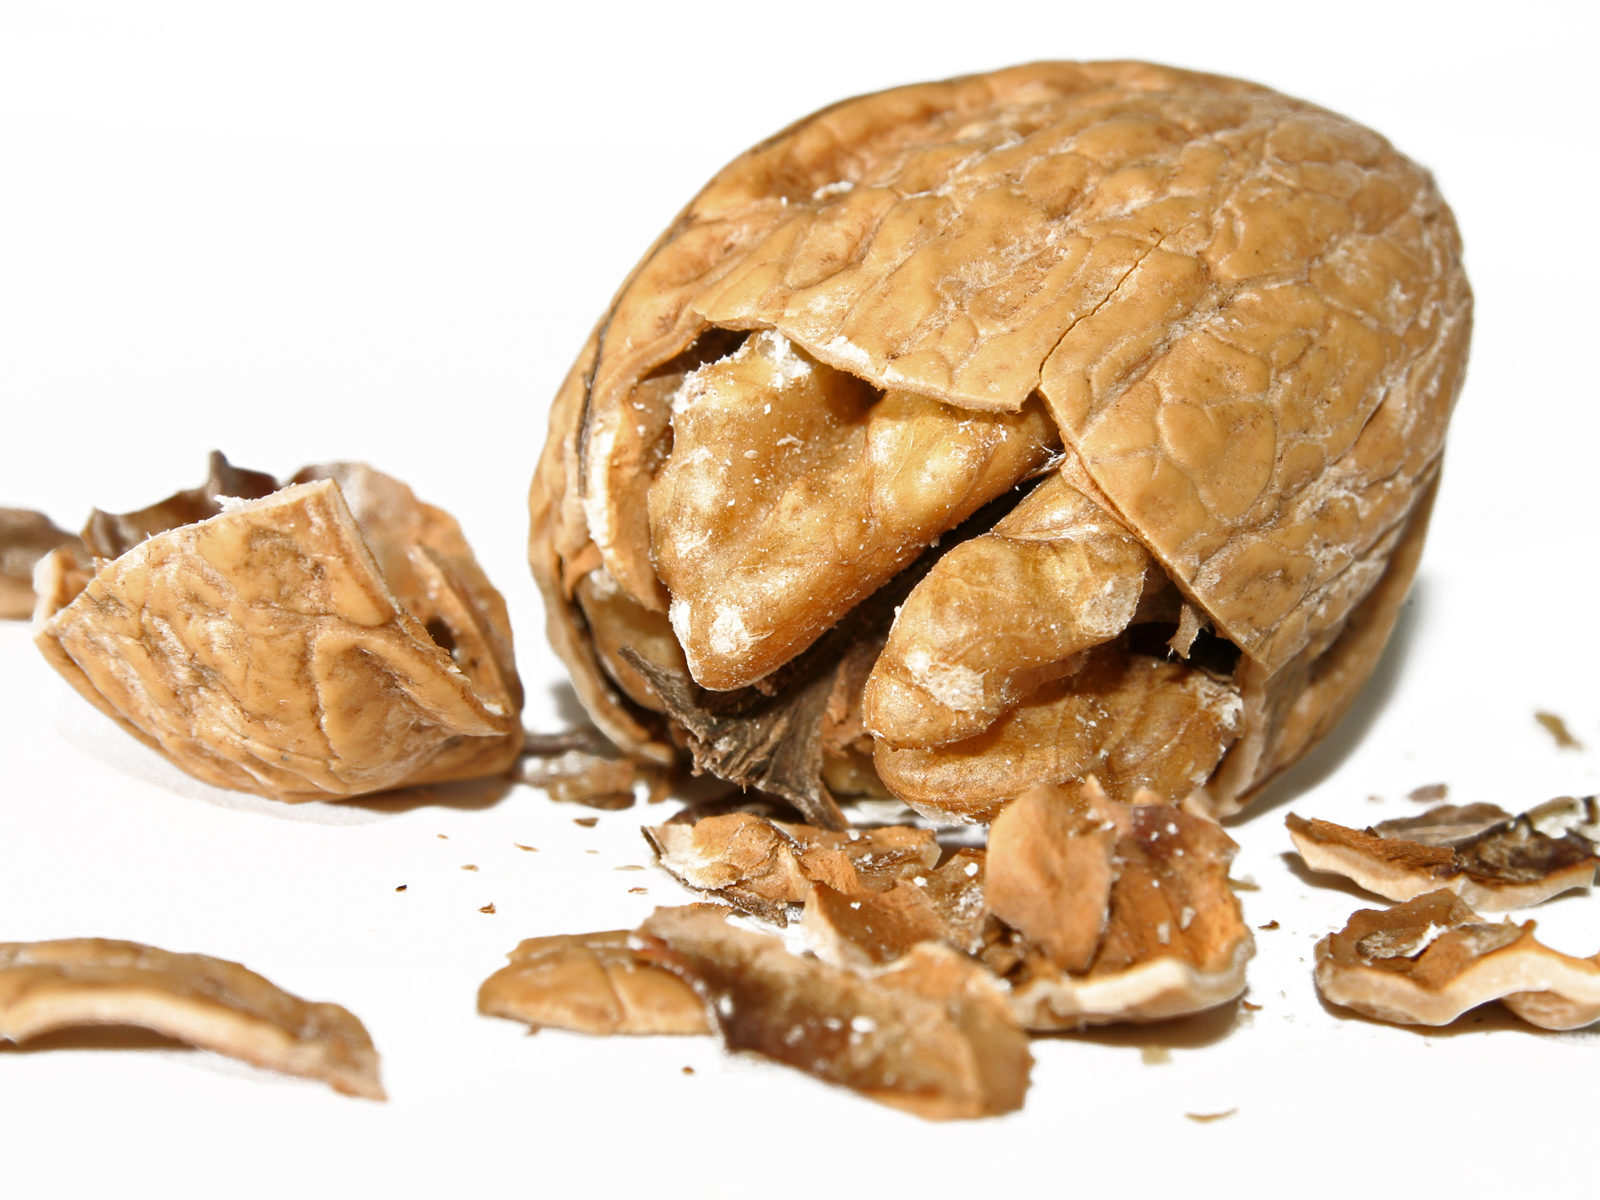 Watch a Man Break the Record for Breaking Walnuts with His Head